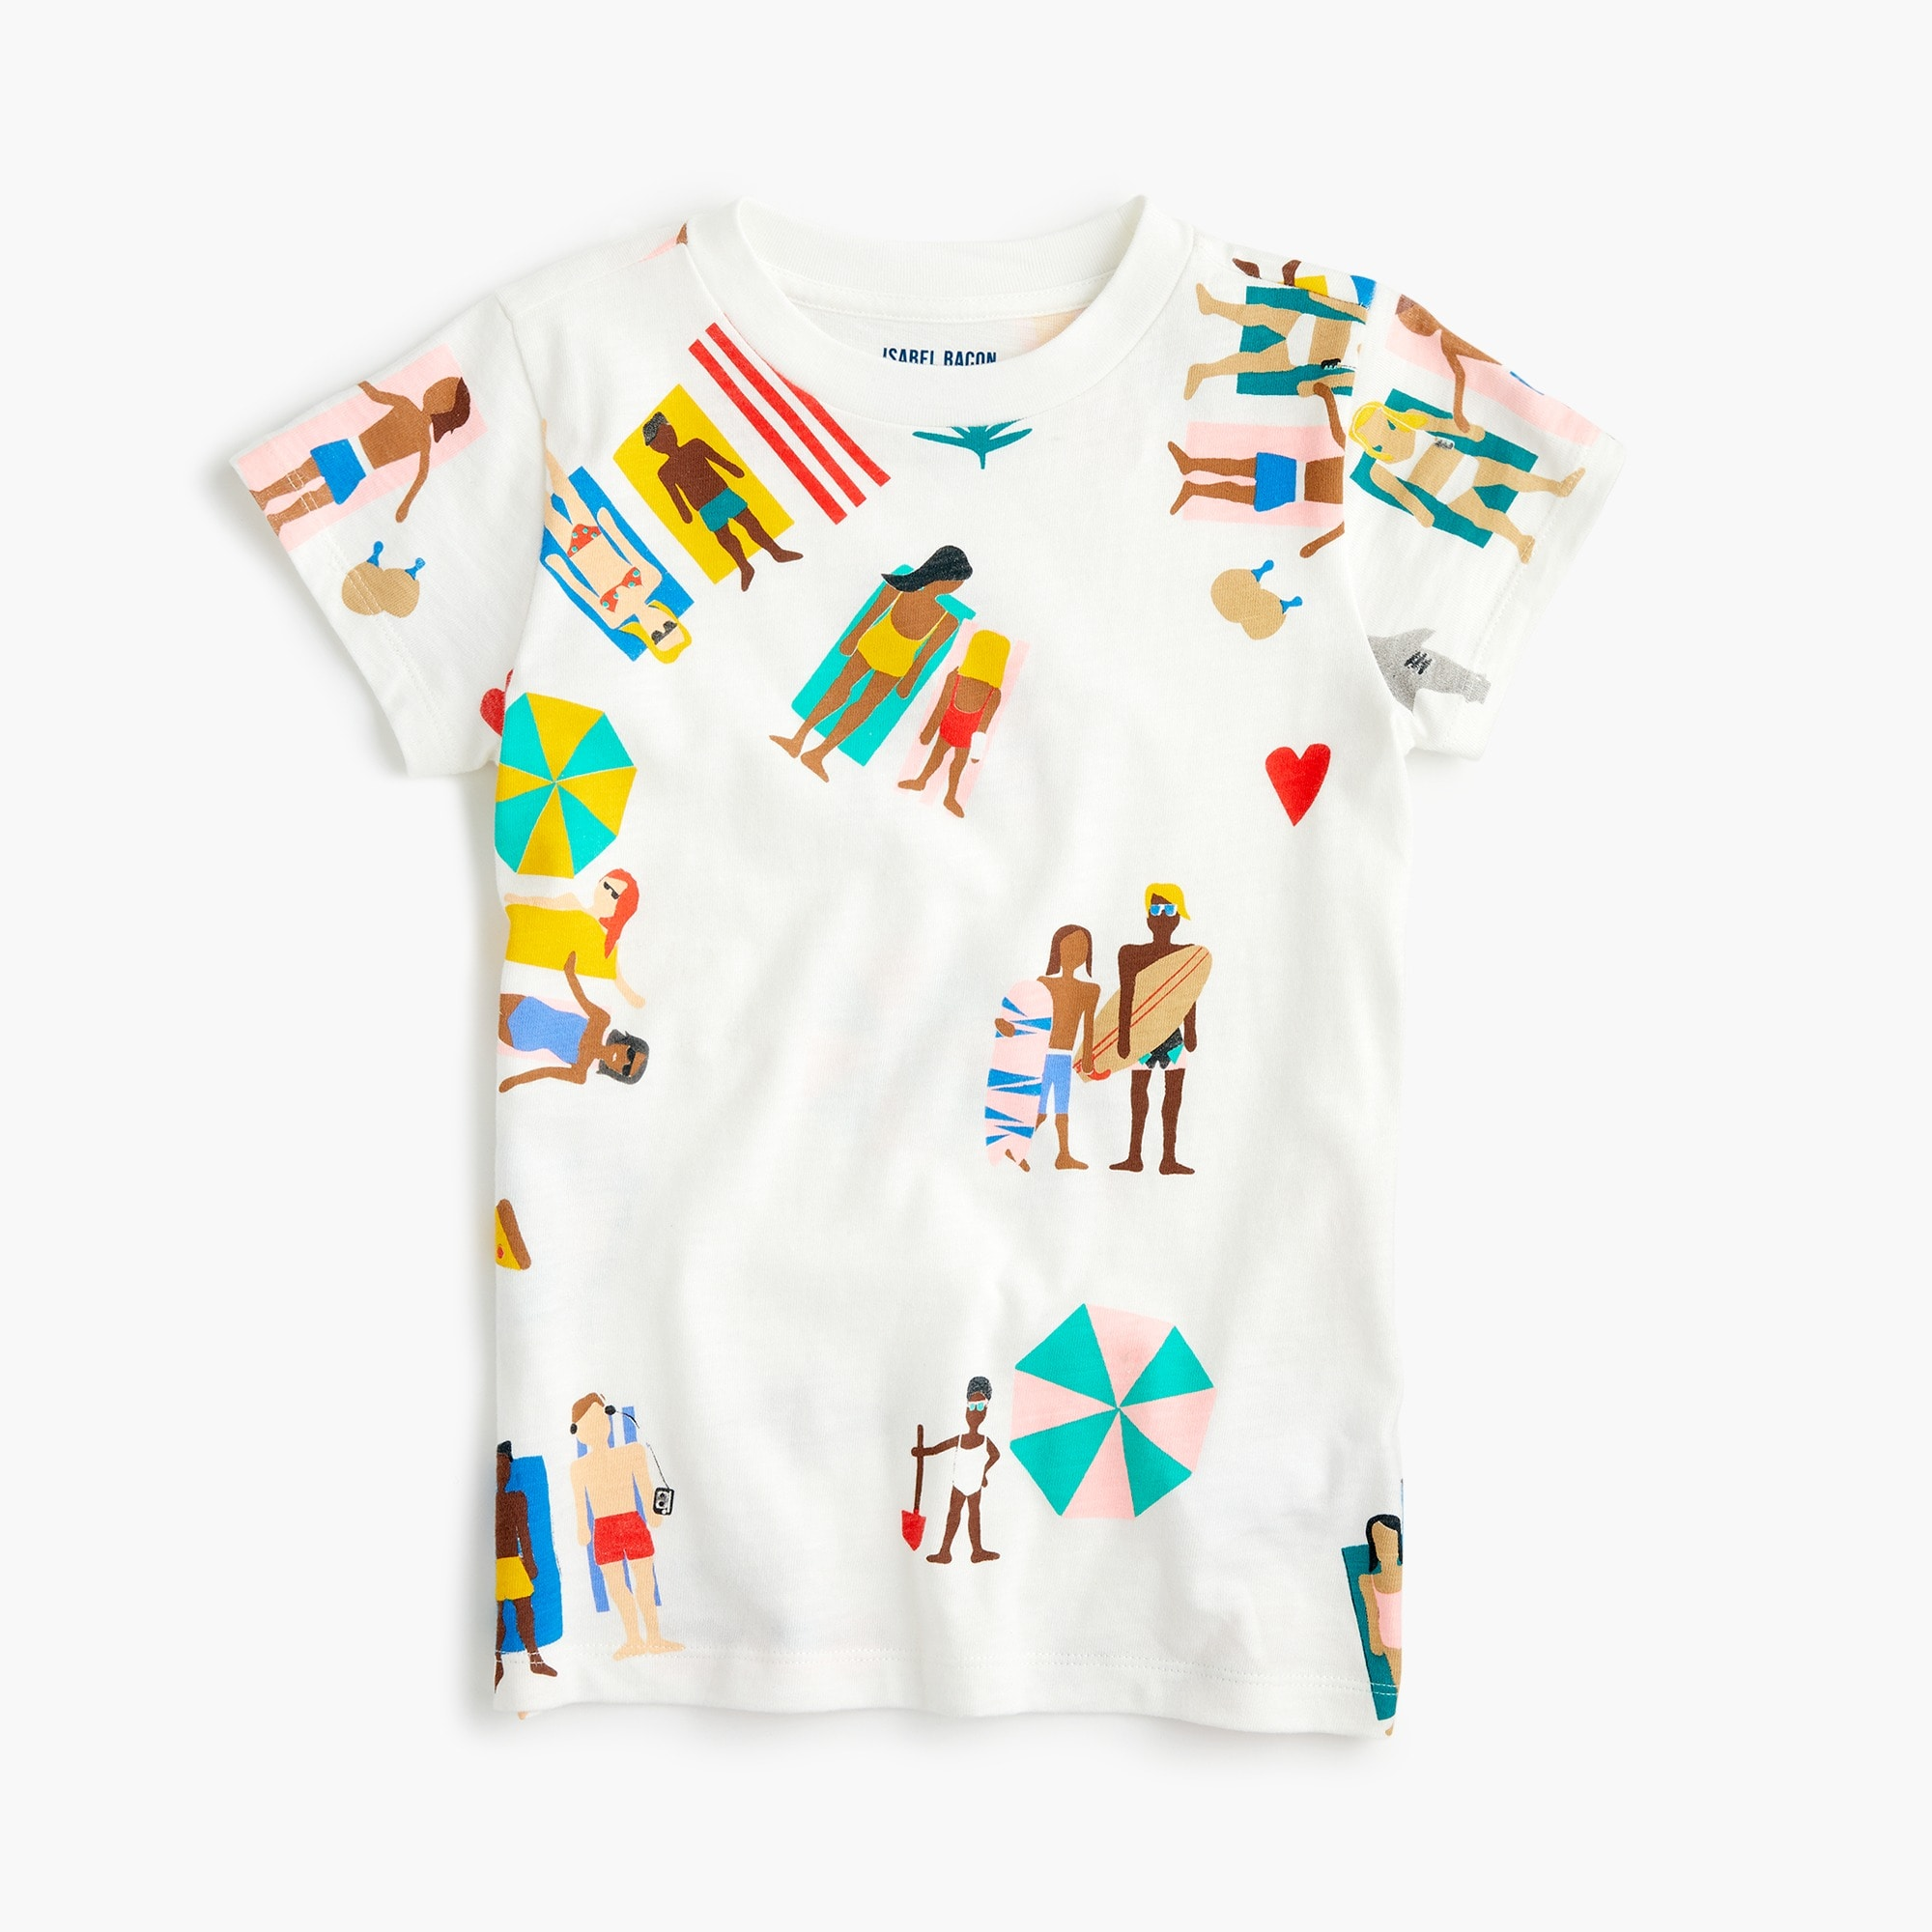 Image 2 for Girls' crewcuts x Isabel Bacon T-shirt